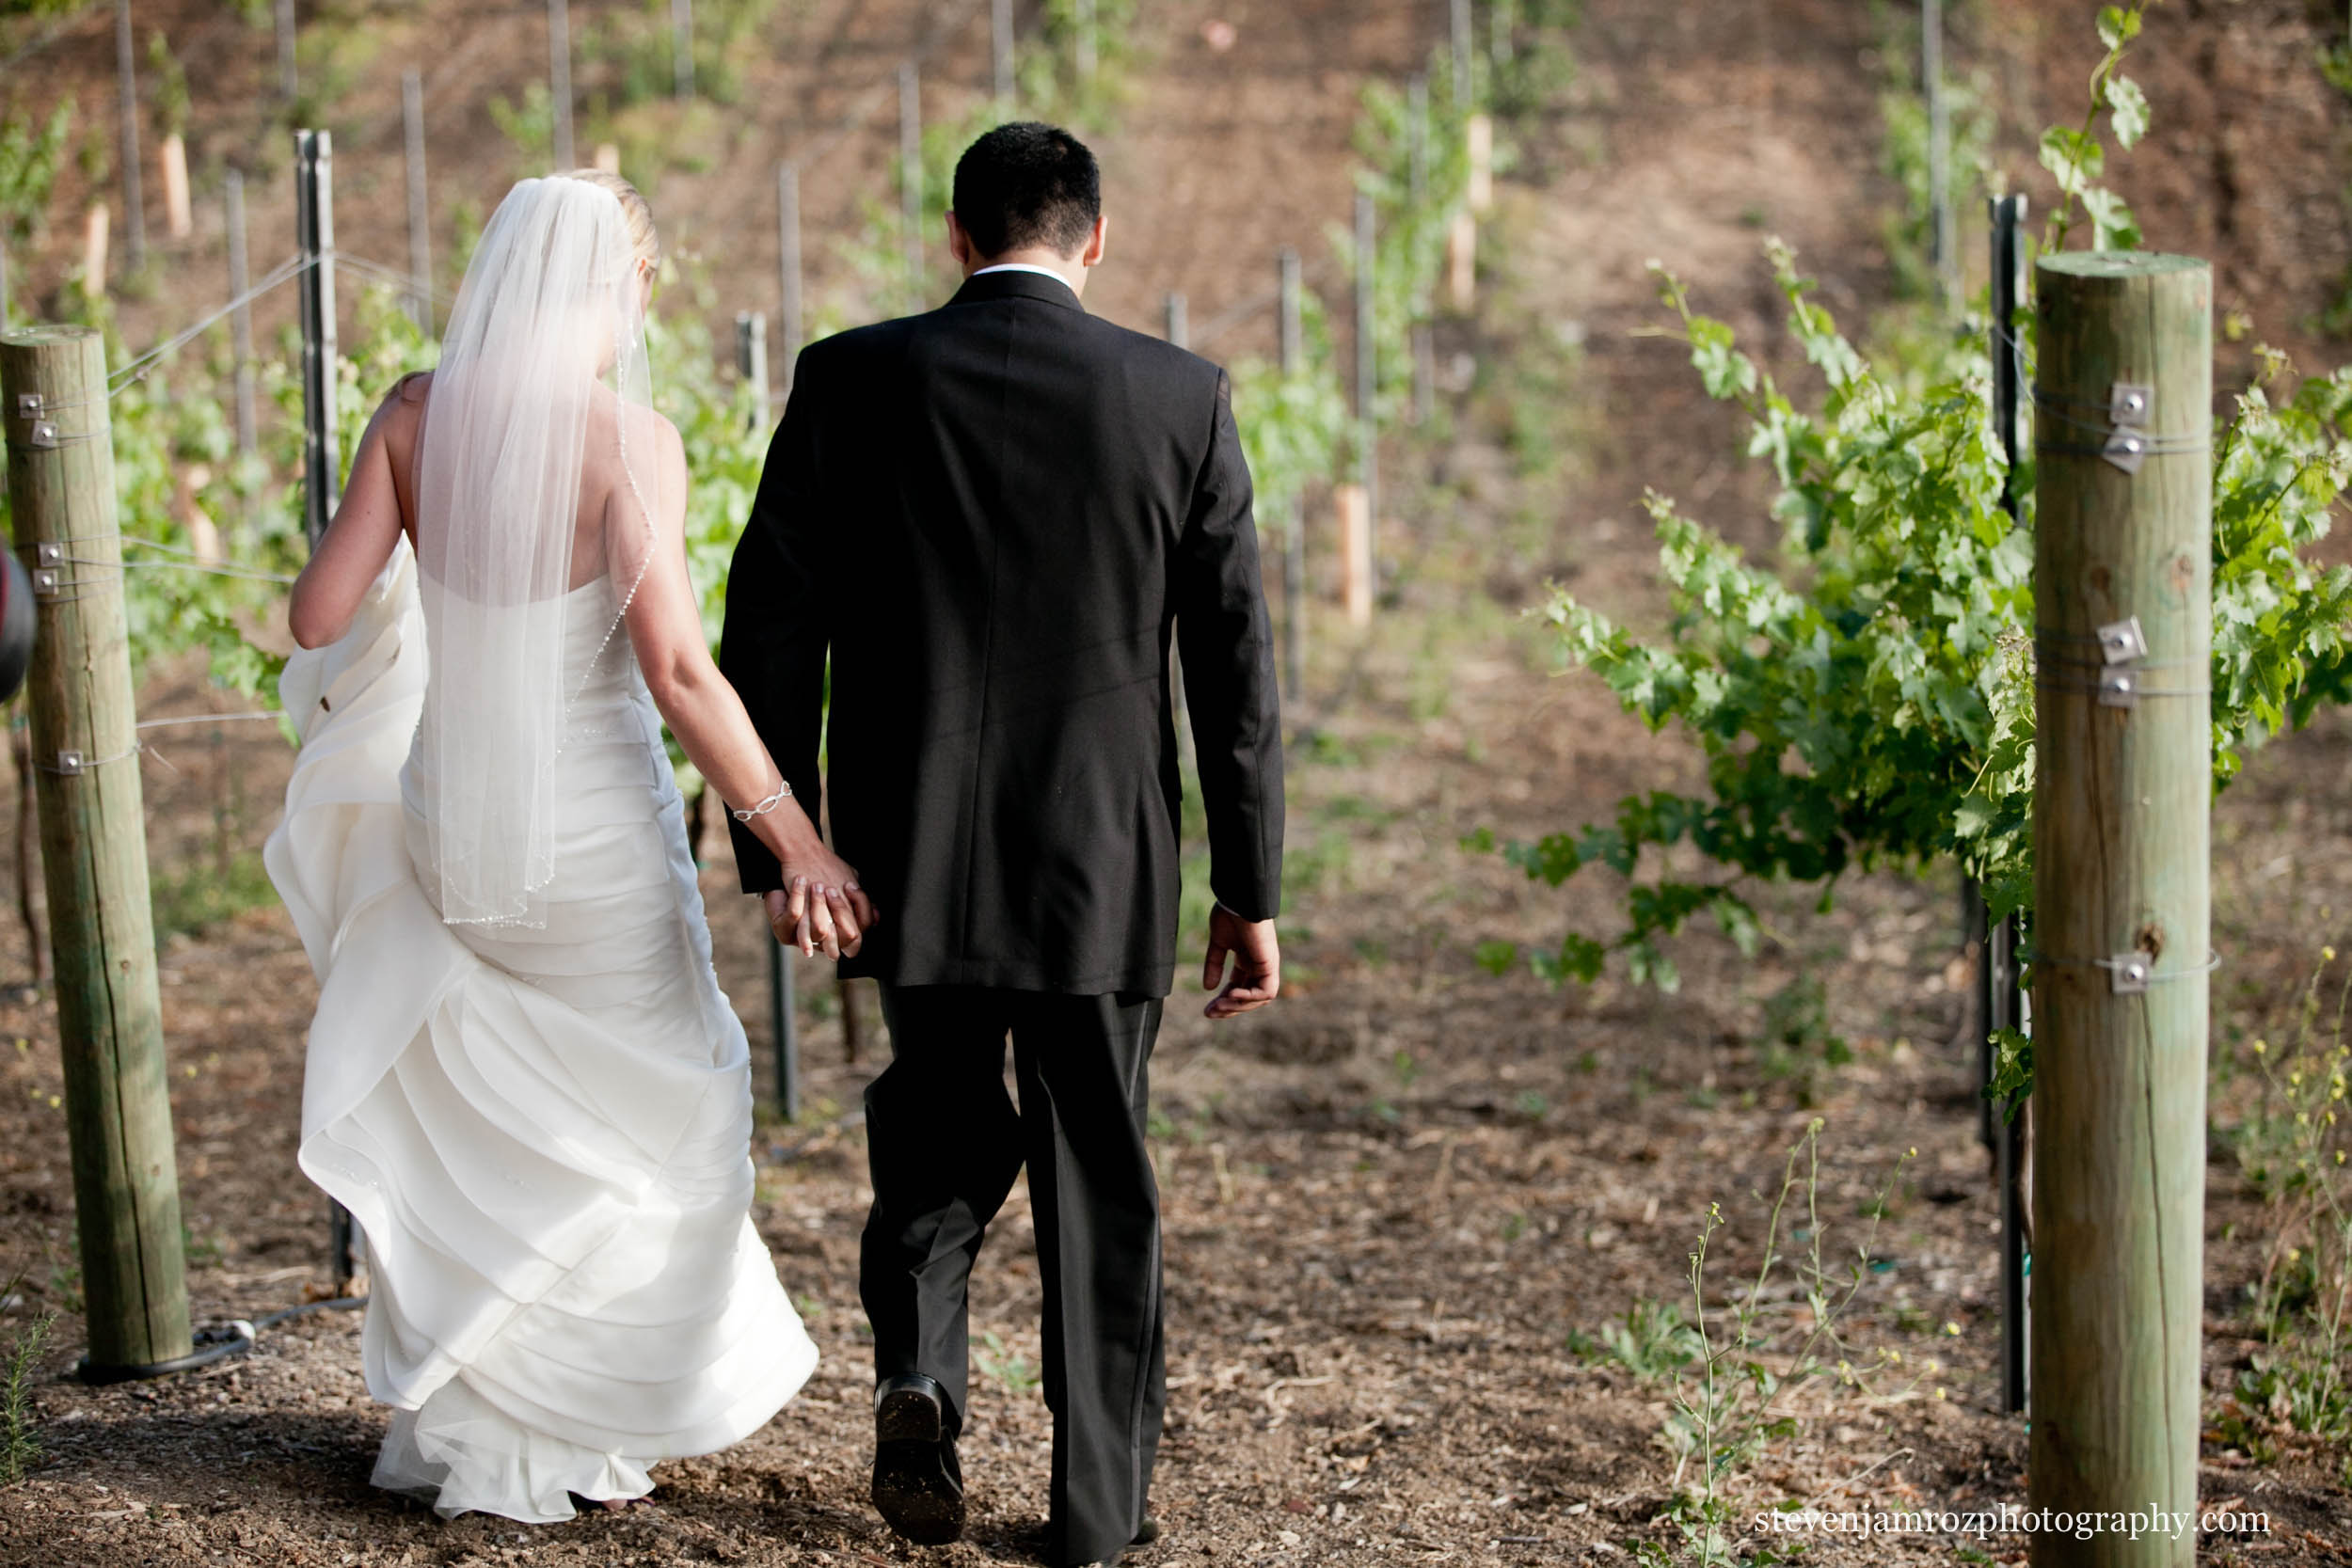 vineyard-bride-groom-walking-wedding-steven-jamroz-photography-0486.jpg